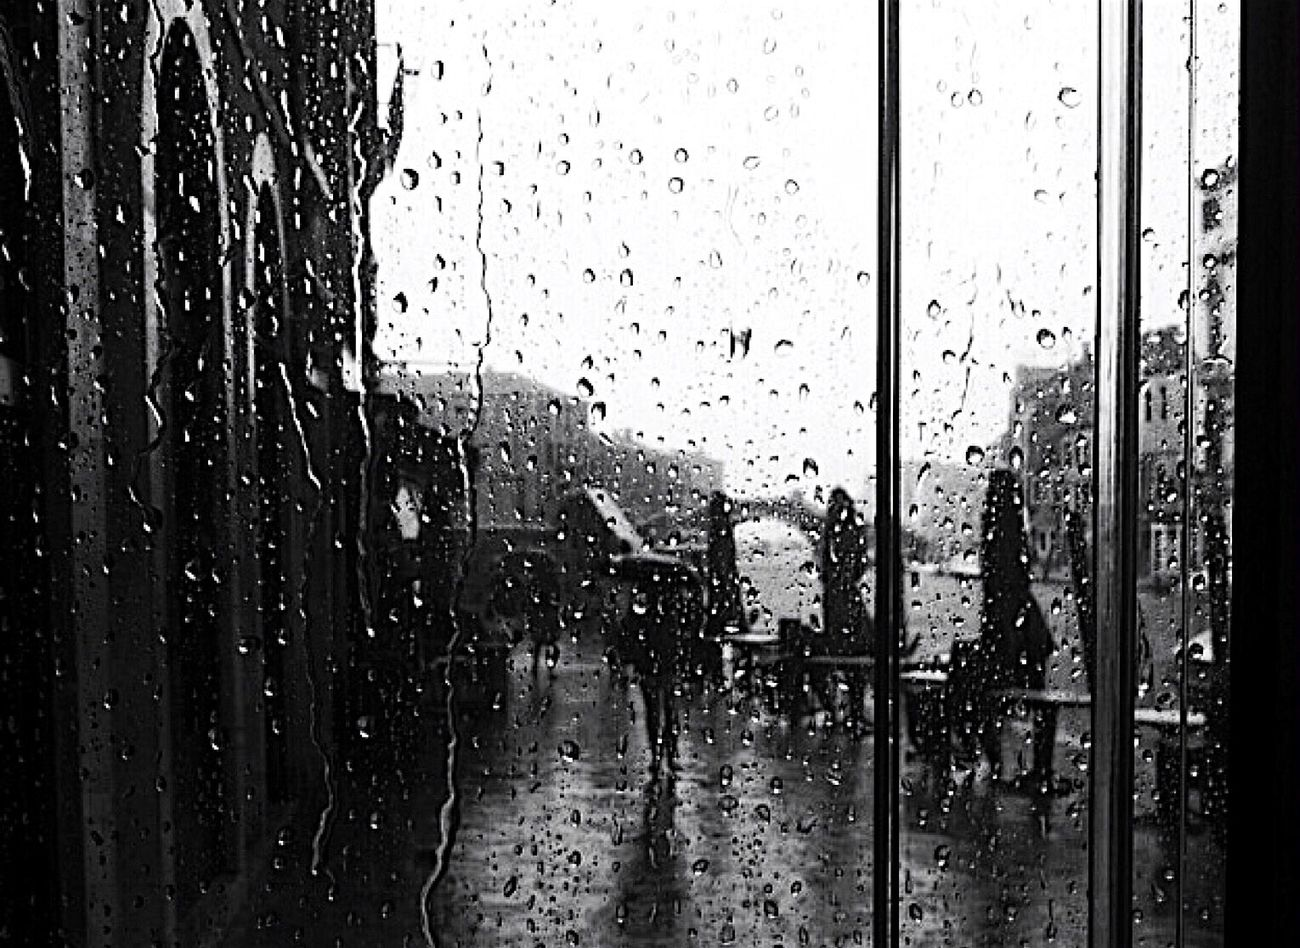 Venice☔️ Venezia Blackandwhite Photo Rain RainyDay Summer Venice, Italy University Secondhome